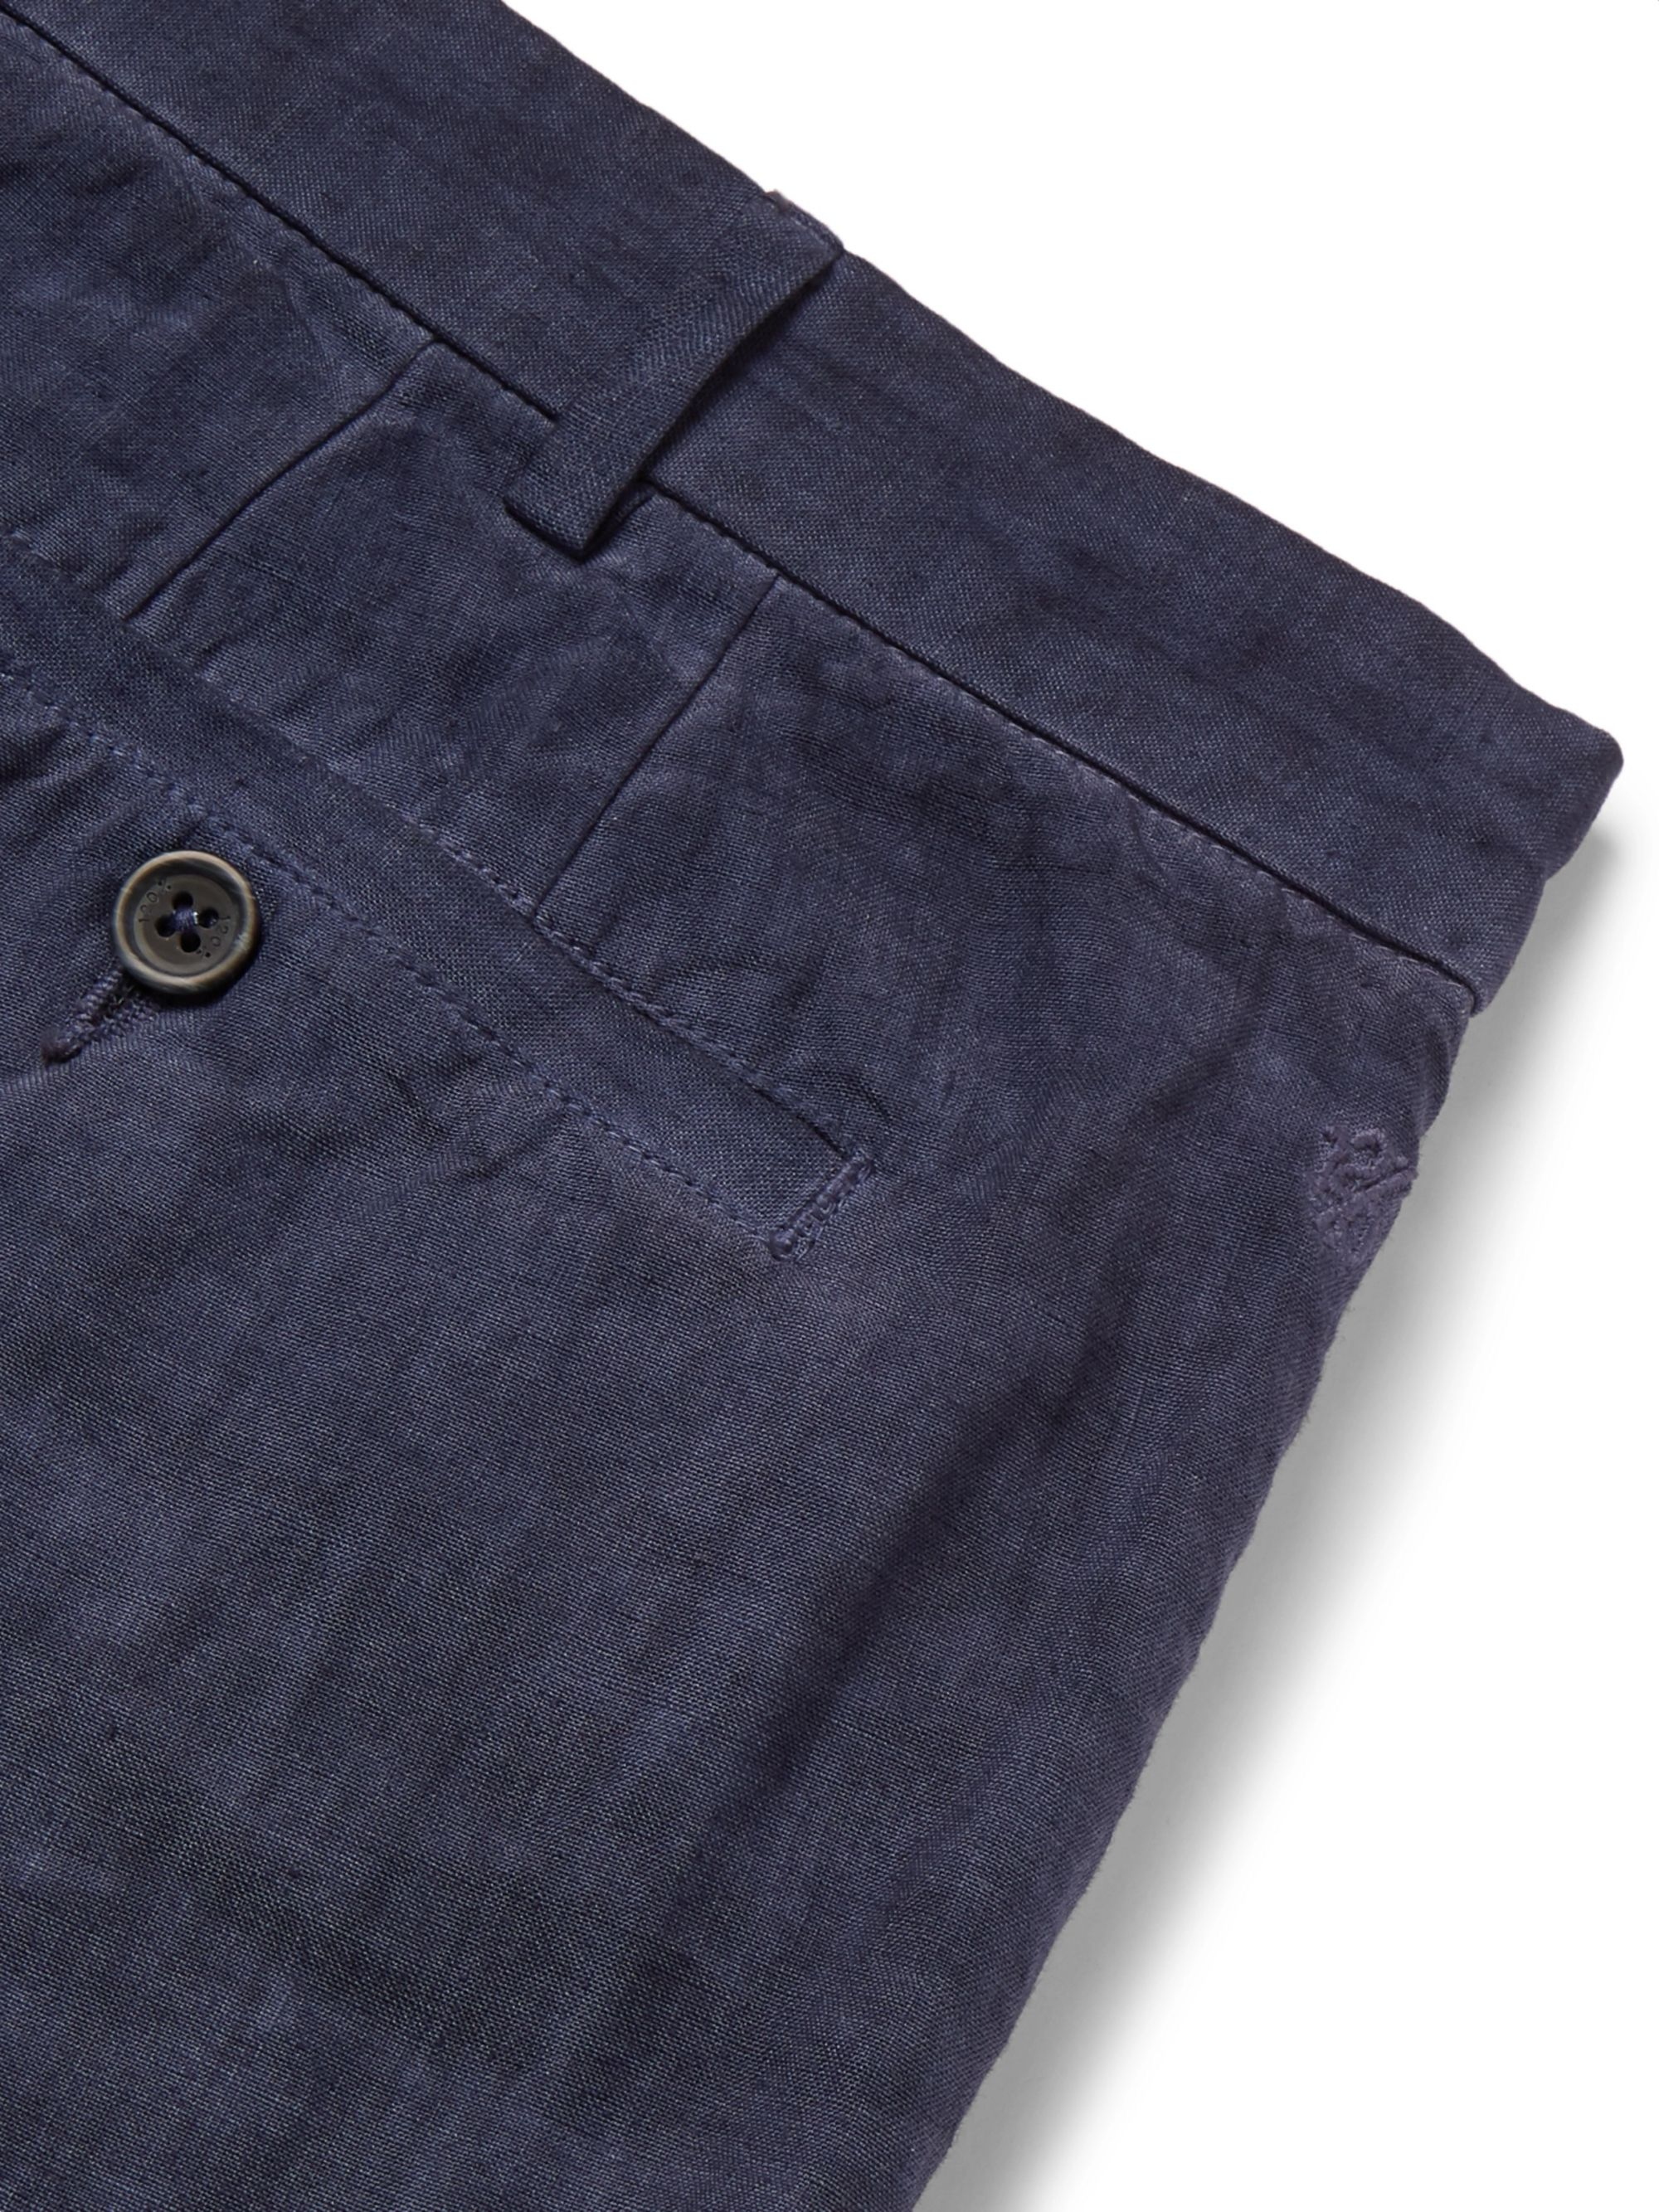 120% Navy Linen Trousers